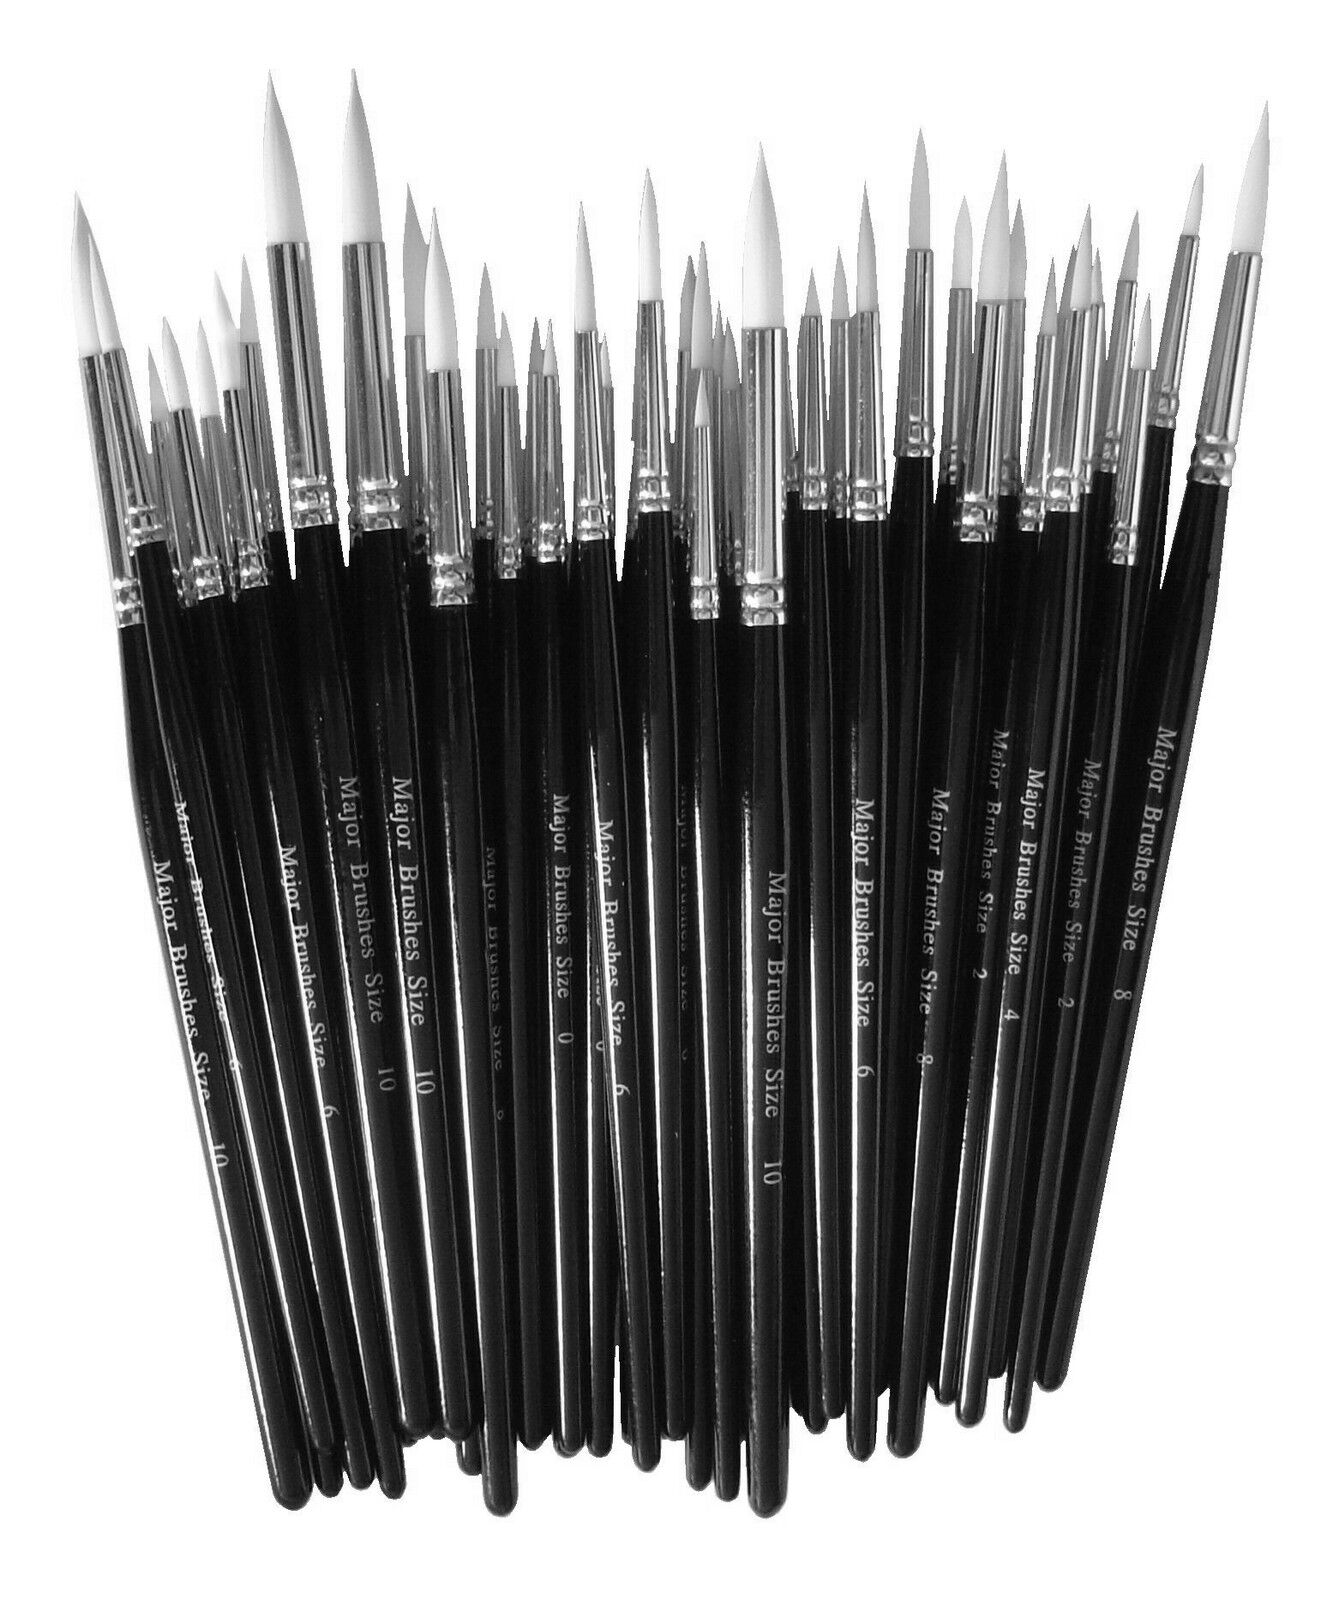 PACK 10 SIZE 2 WHITE SABLE ROUND ARTIST ACRYLIC WATERCOLOUR PAINT BRUSHES 53402